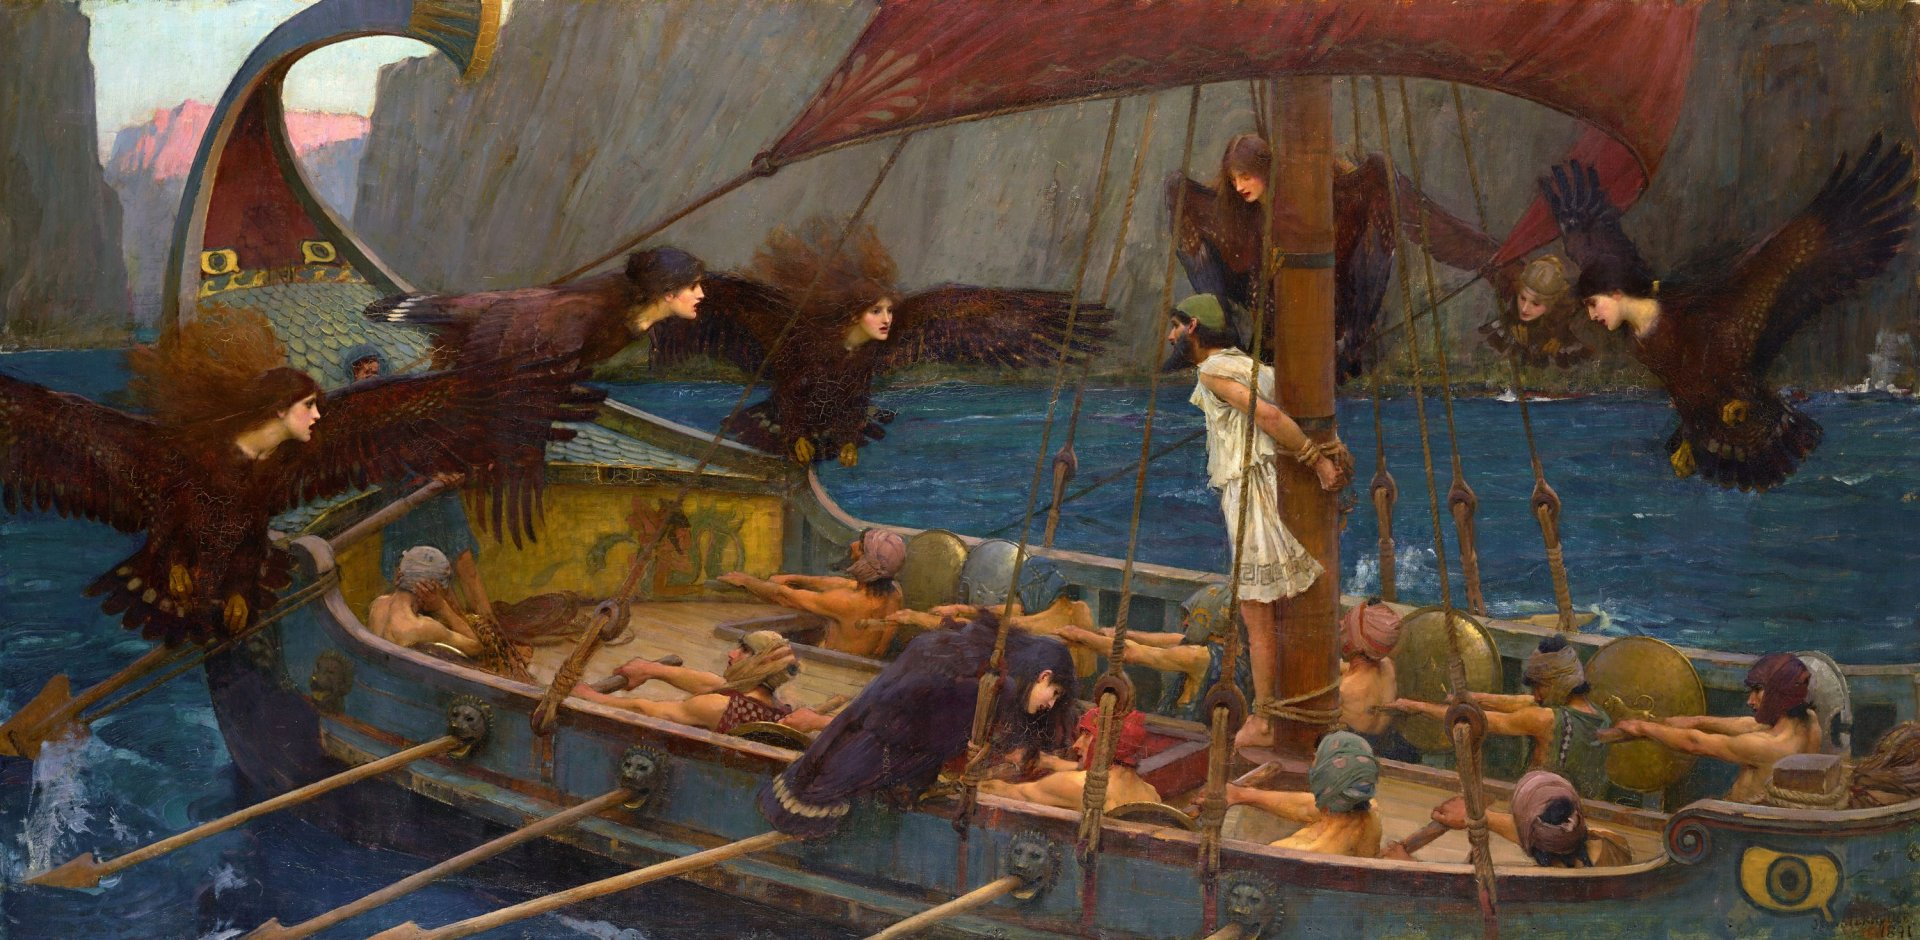 Ulysses-and-the-Sirens-by-John-William-Waterhouse.jpg